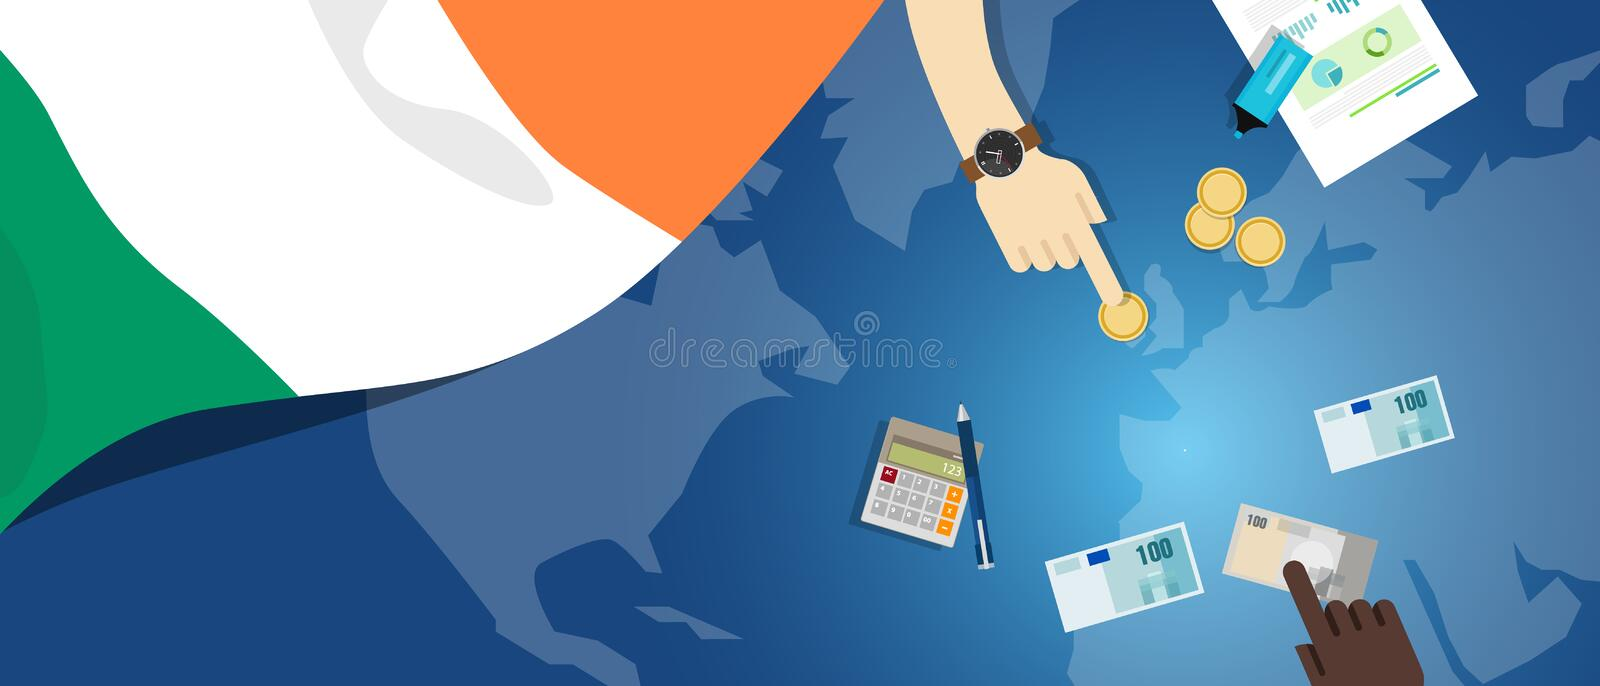 Ireland economy fiscal money trade concept illustration of financial banking budget with flag map and currency. Vector stock illustration